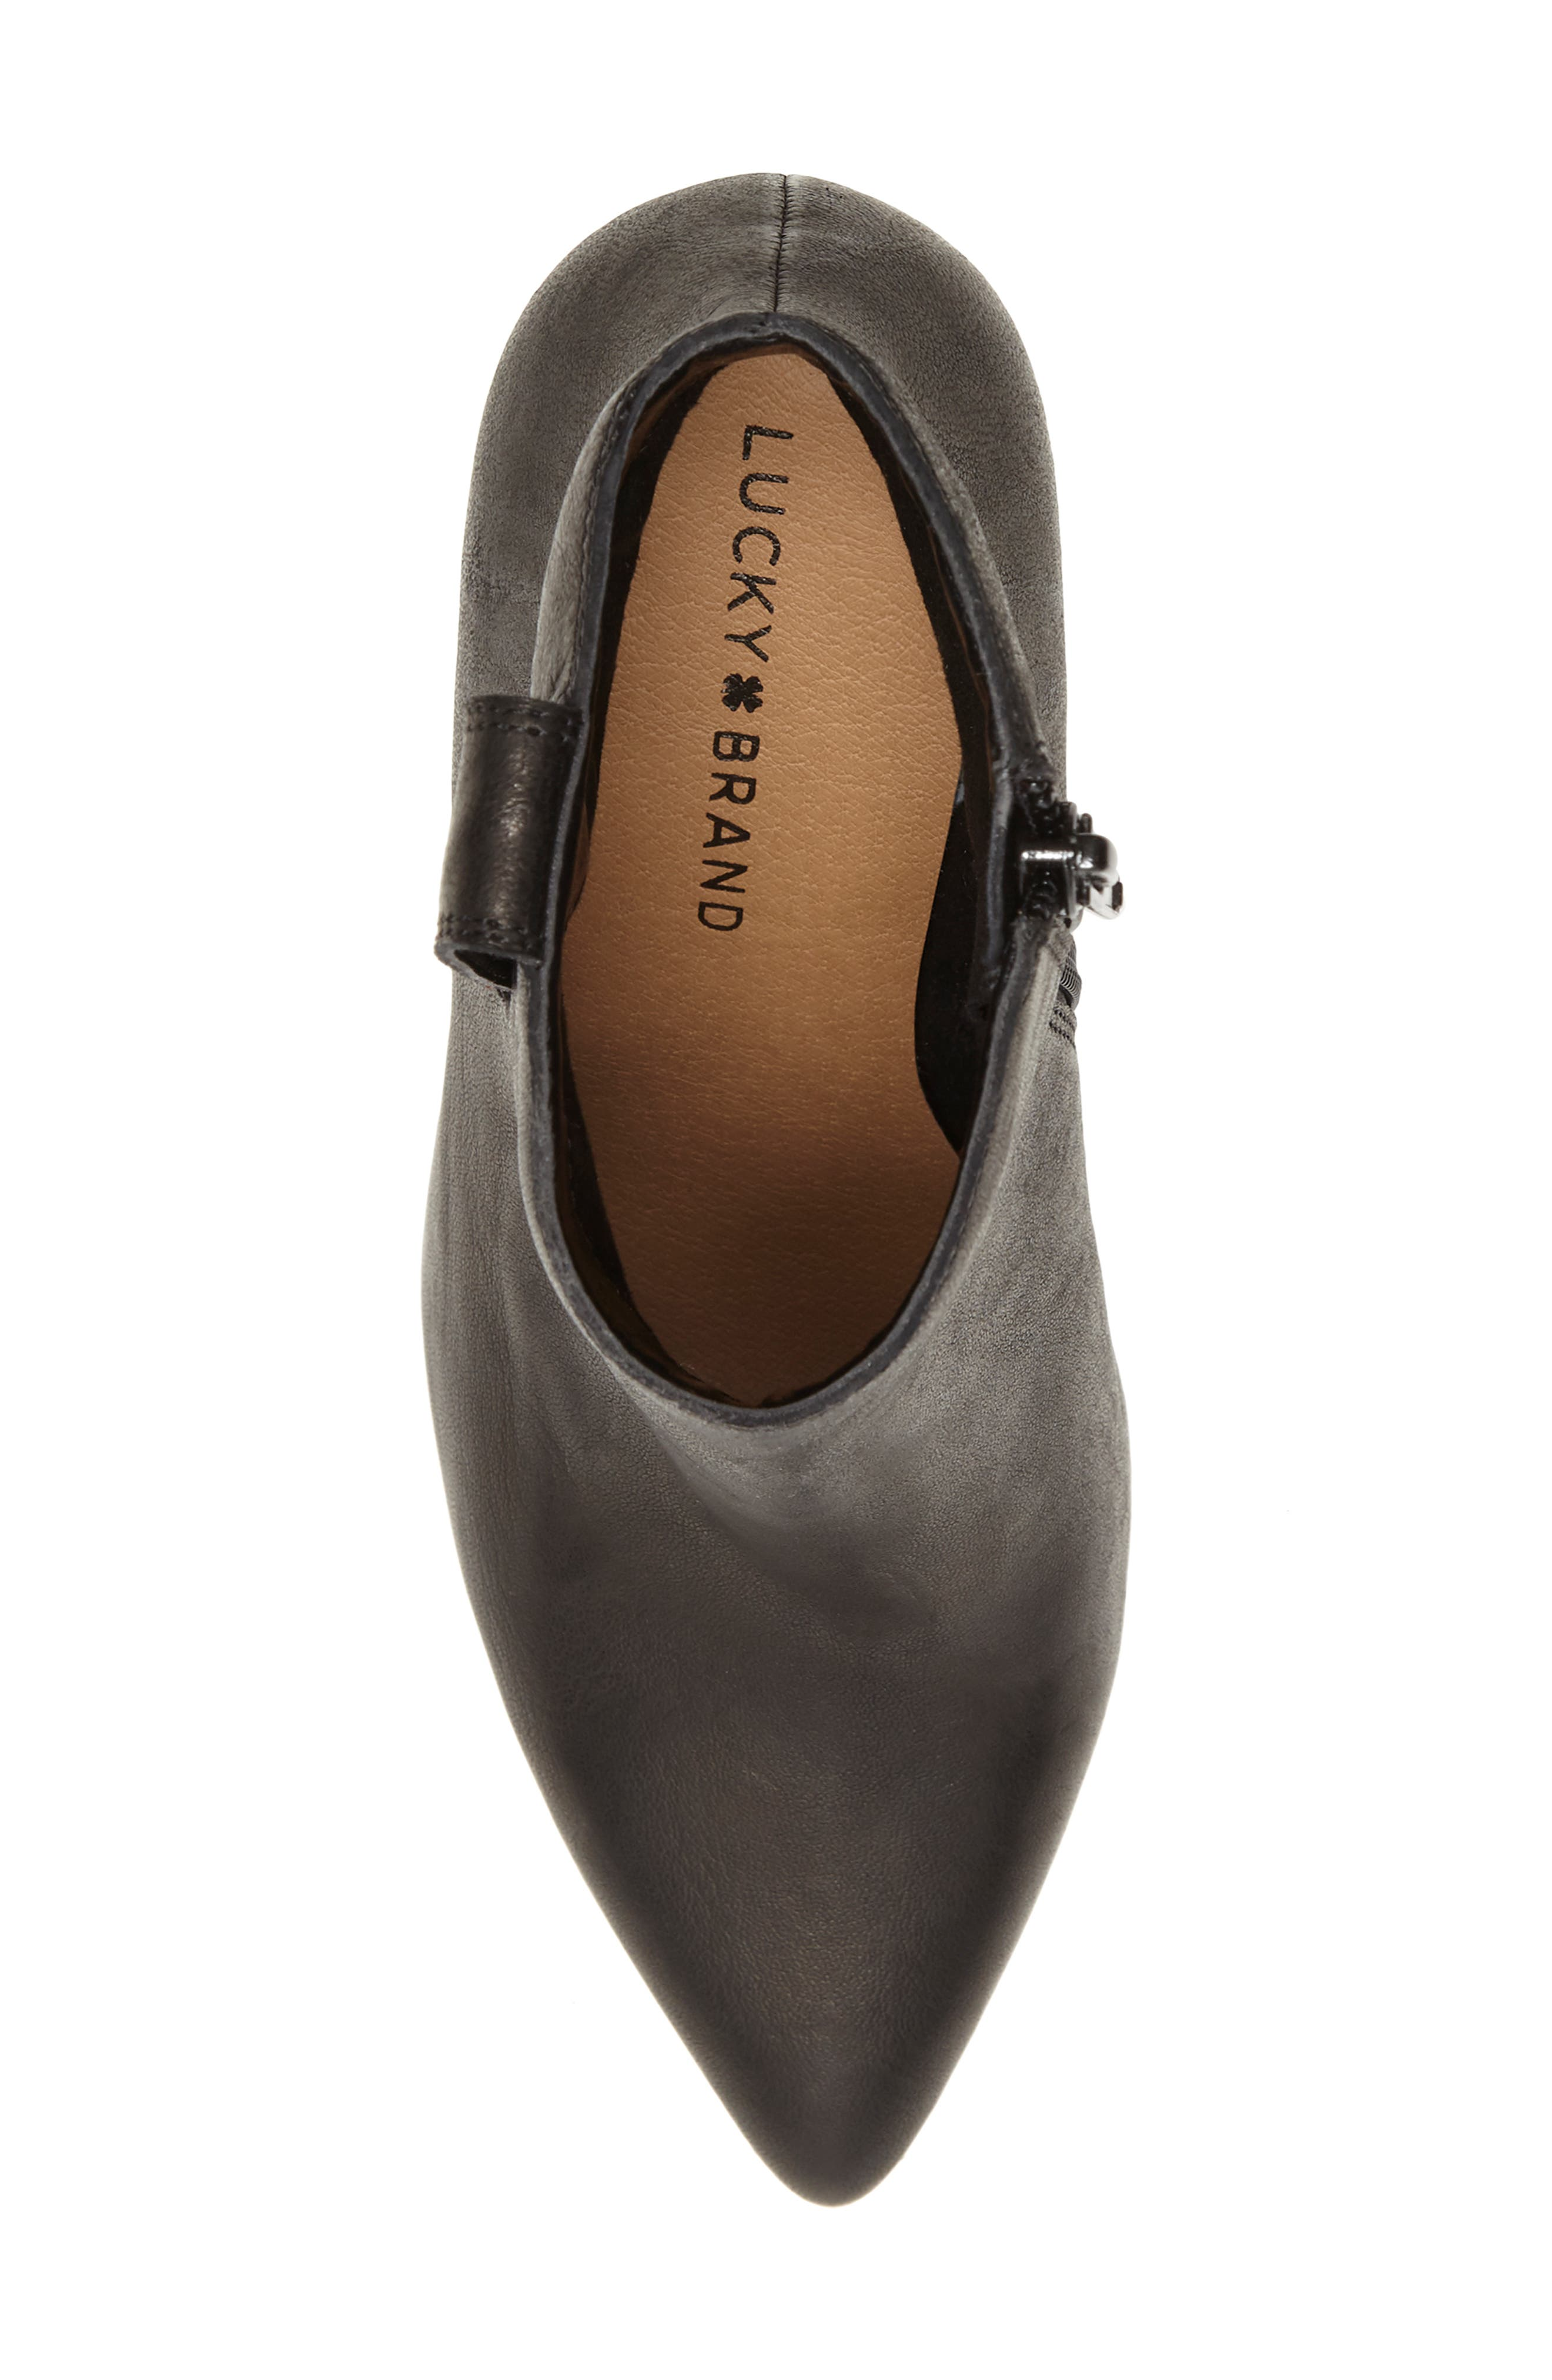 LUCKY BRAND,                             Torince Bootie,                             Alternate thumbnail 5, color,                             200